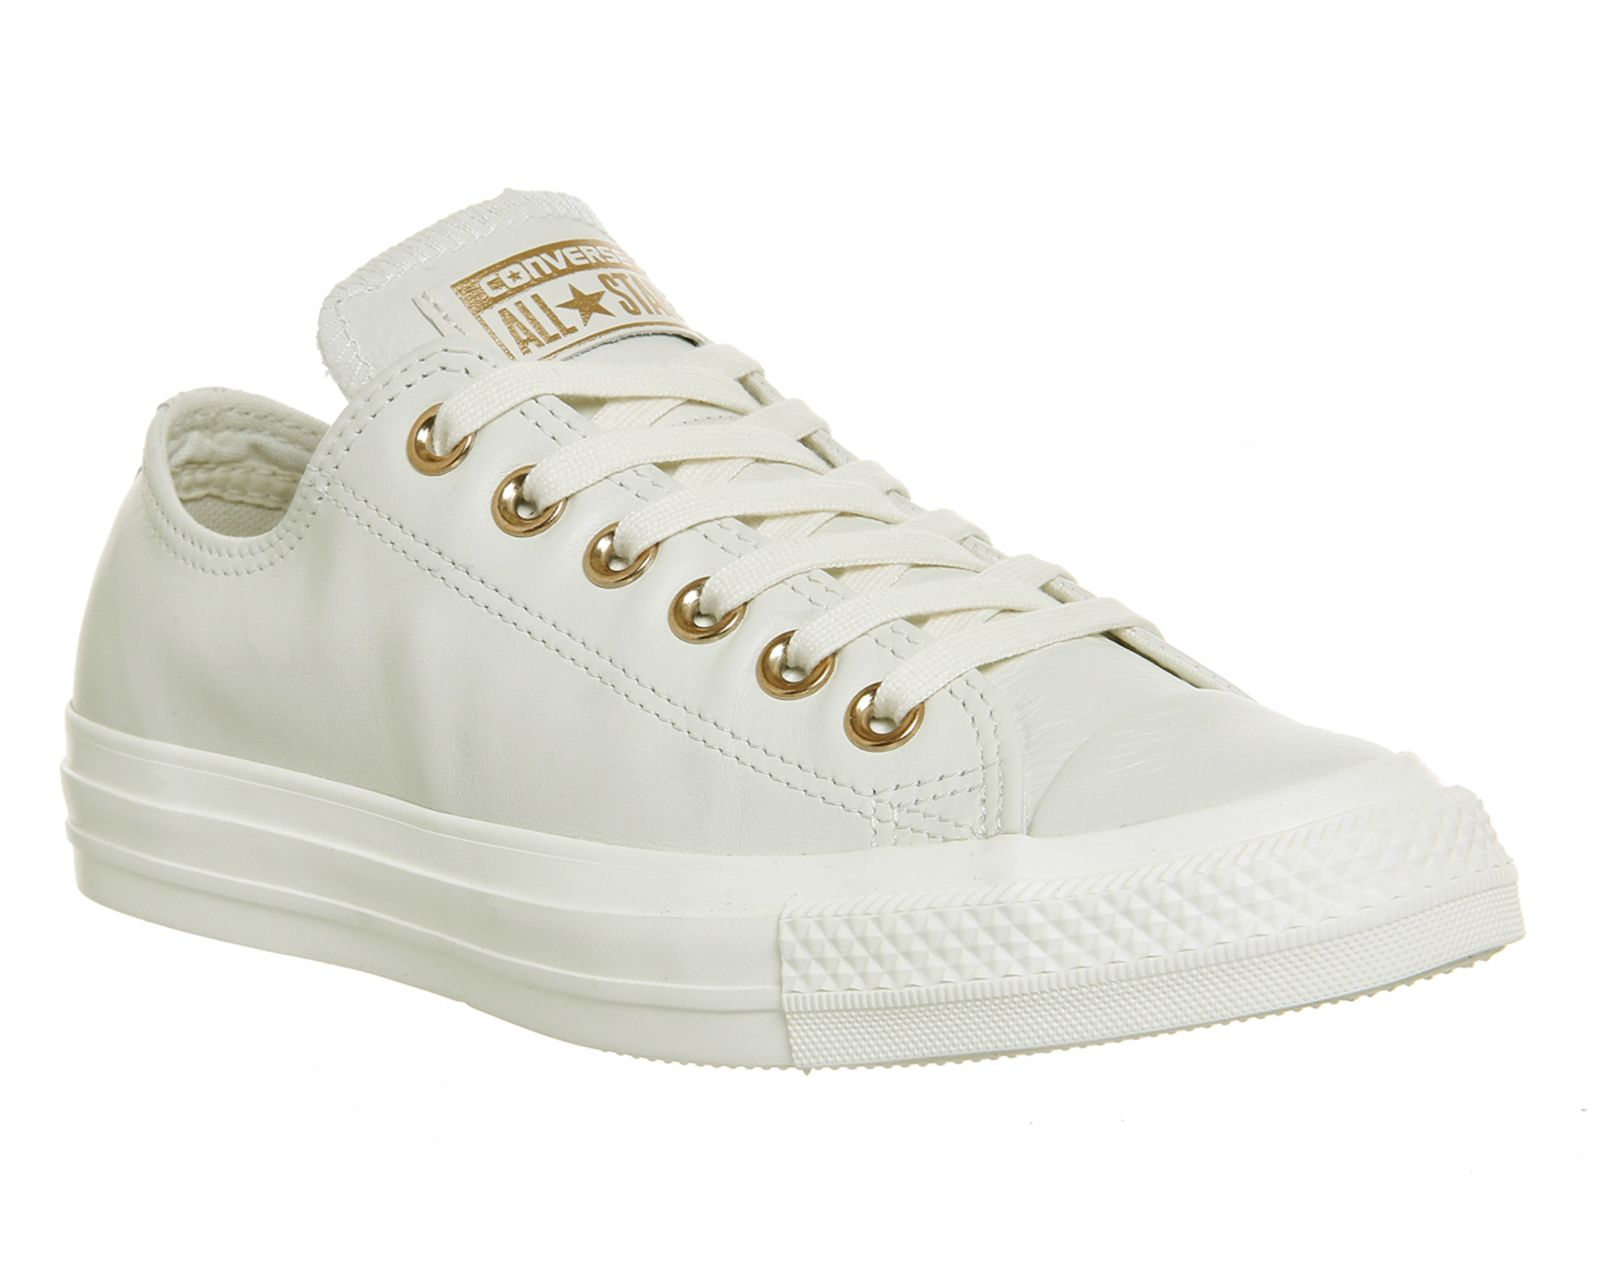 converse chuck taylor converse shoes pocket money gold lace rose gold. Black Bedroom Furniture Sets. Home Design Ideas